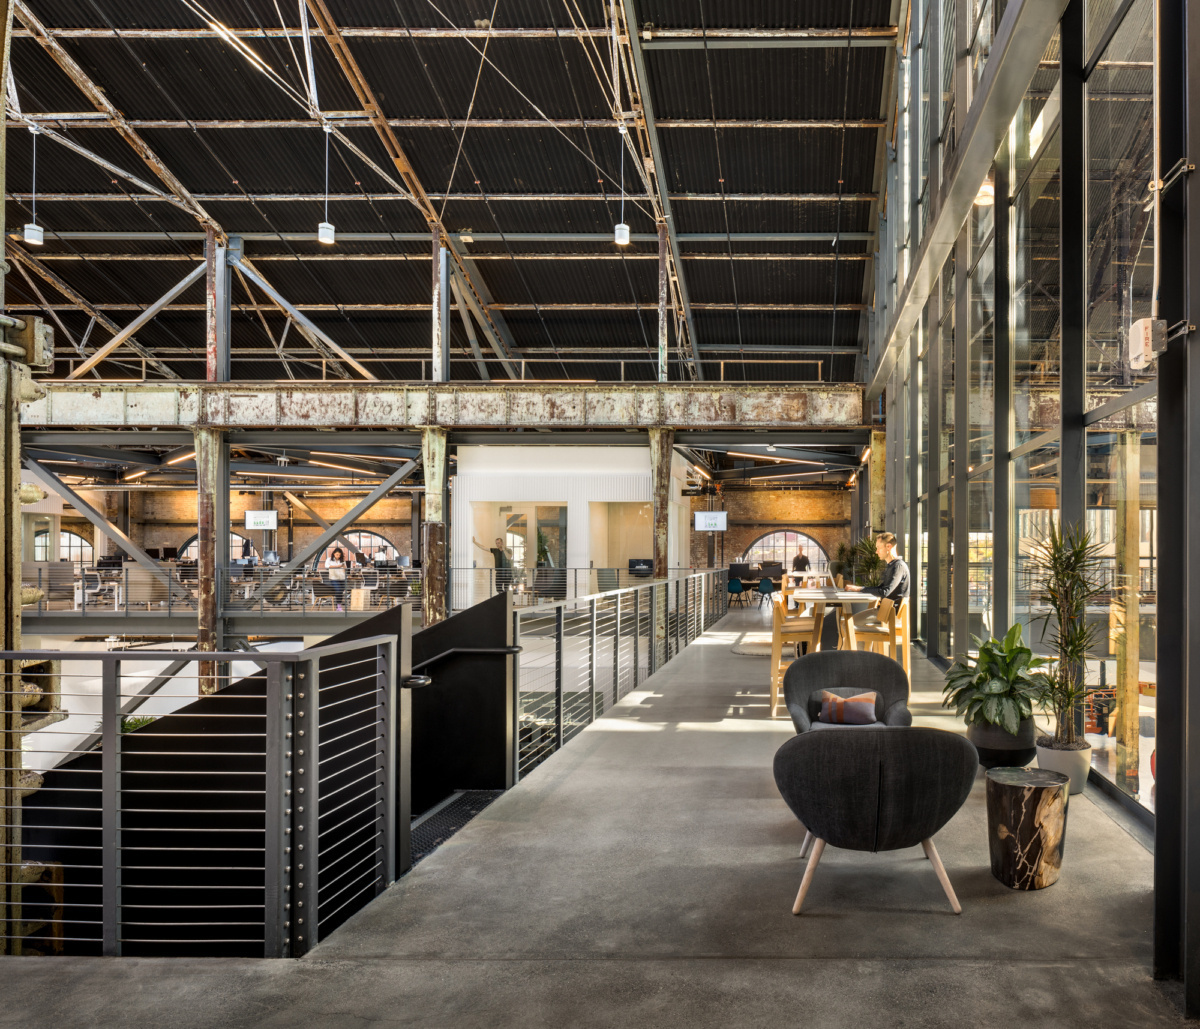 The versatile open space at Gusto's HQ in San Francisco, California, featuring the Signum 10 high bay cylinder by Meteor Lighting.